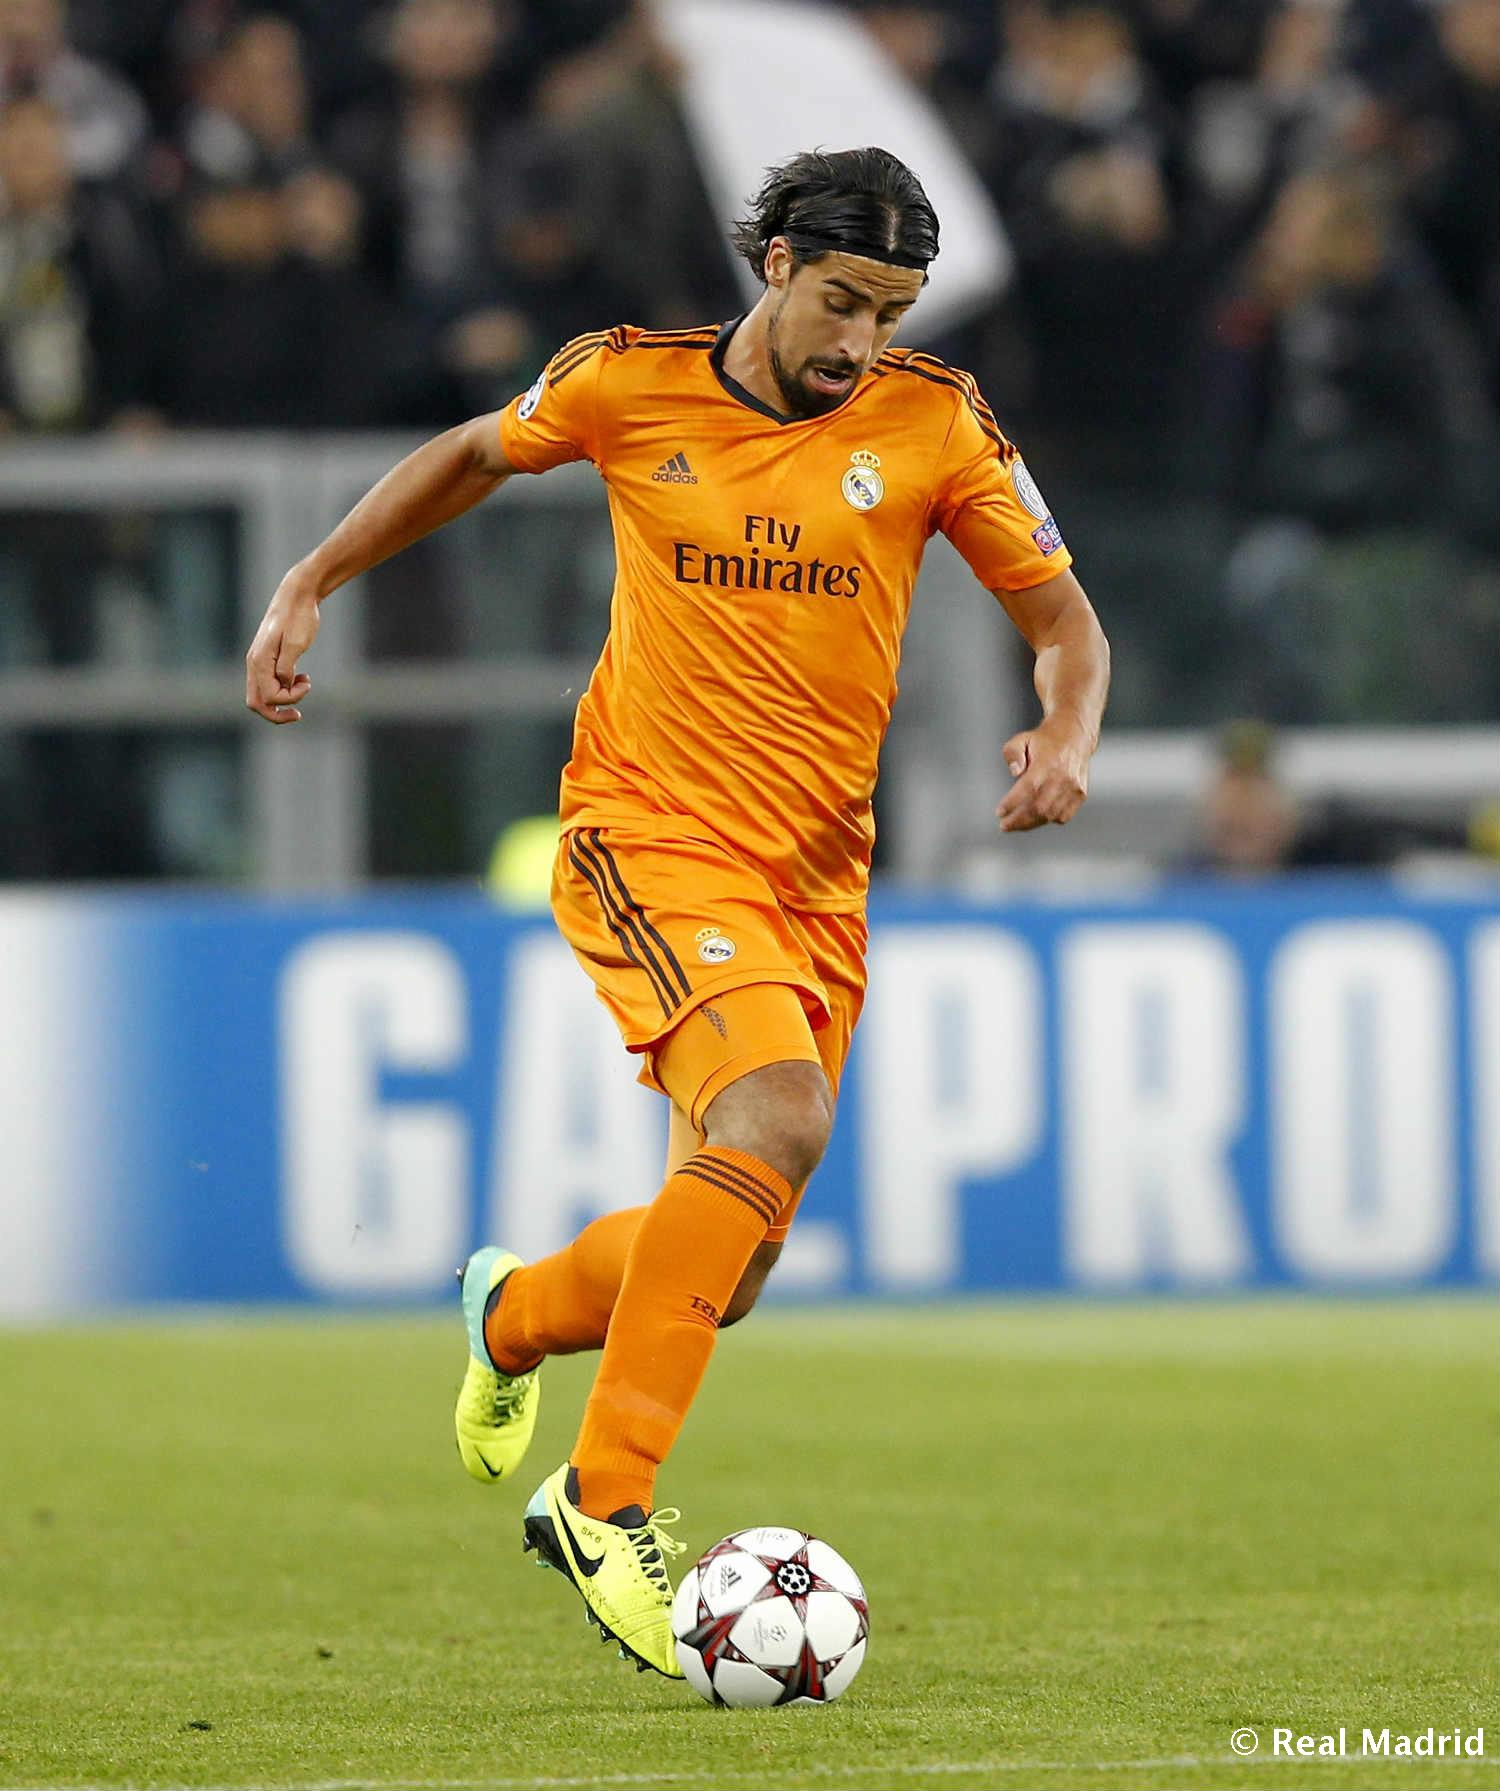 Real Madrid - Khedira - 27-01-2014